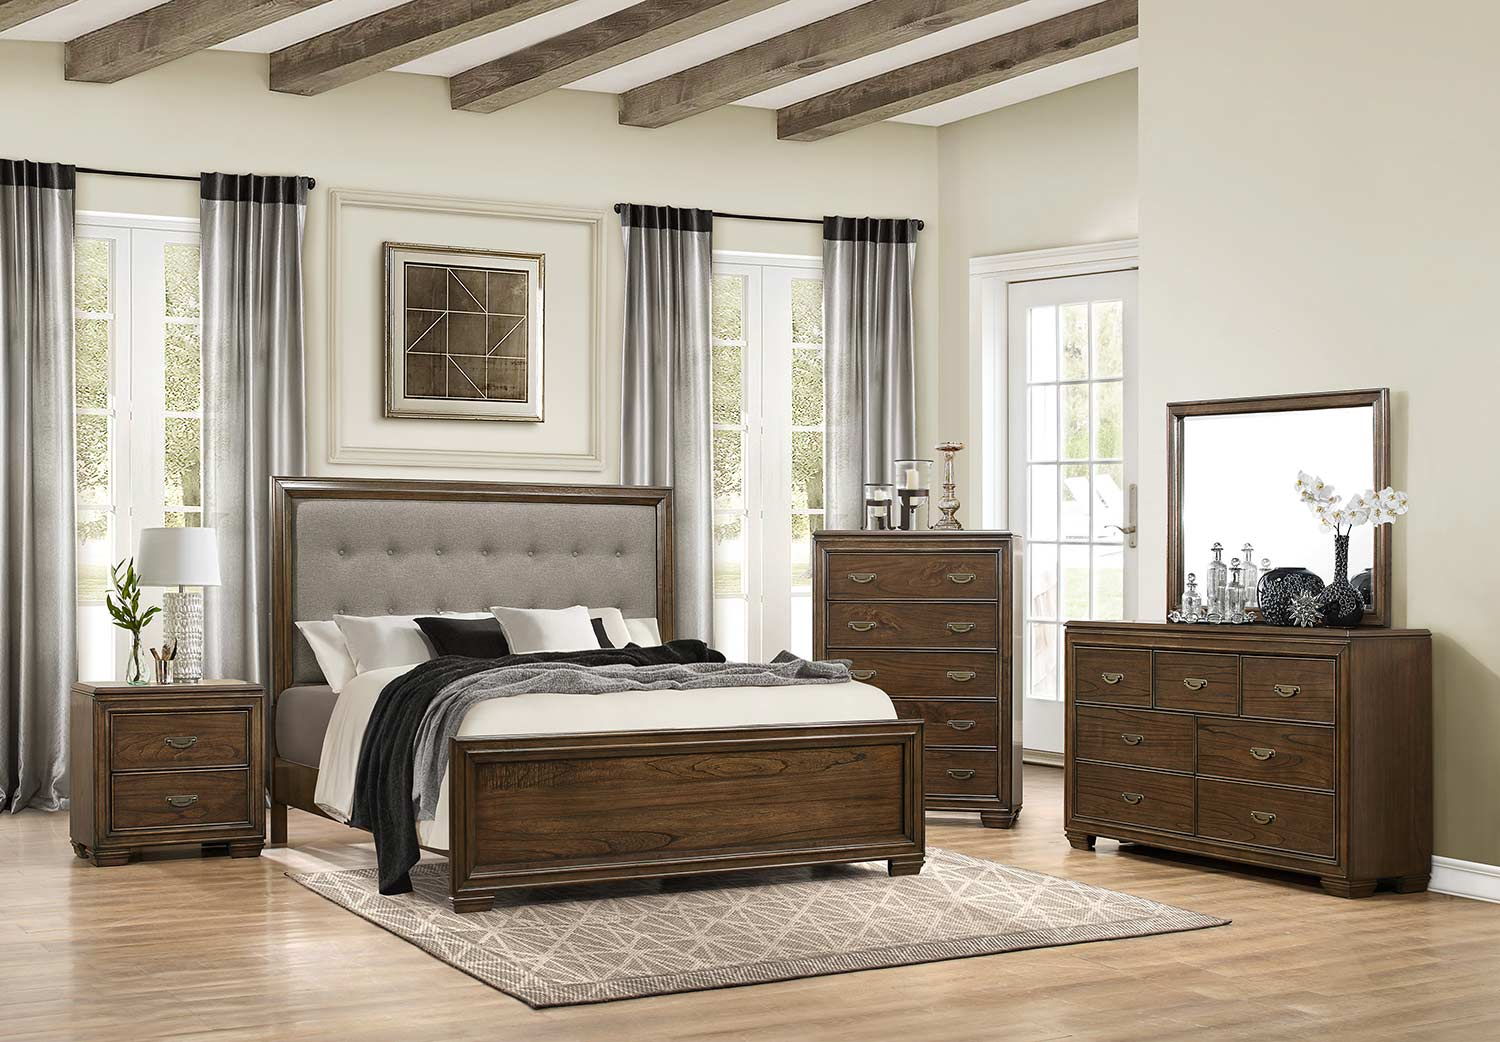 Homelegance Leavitt Bedroom Set - Brown Cherry